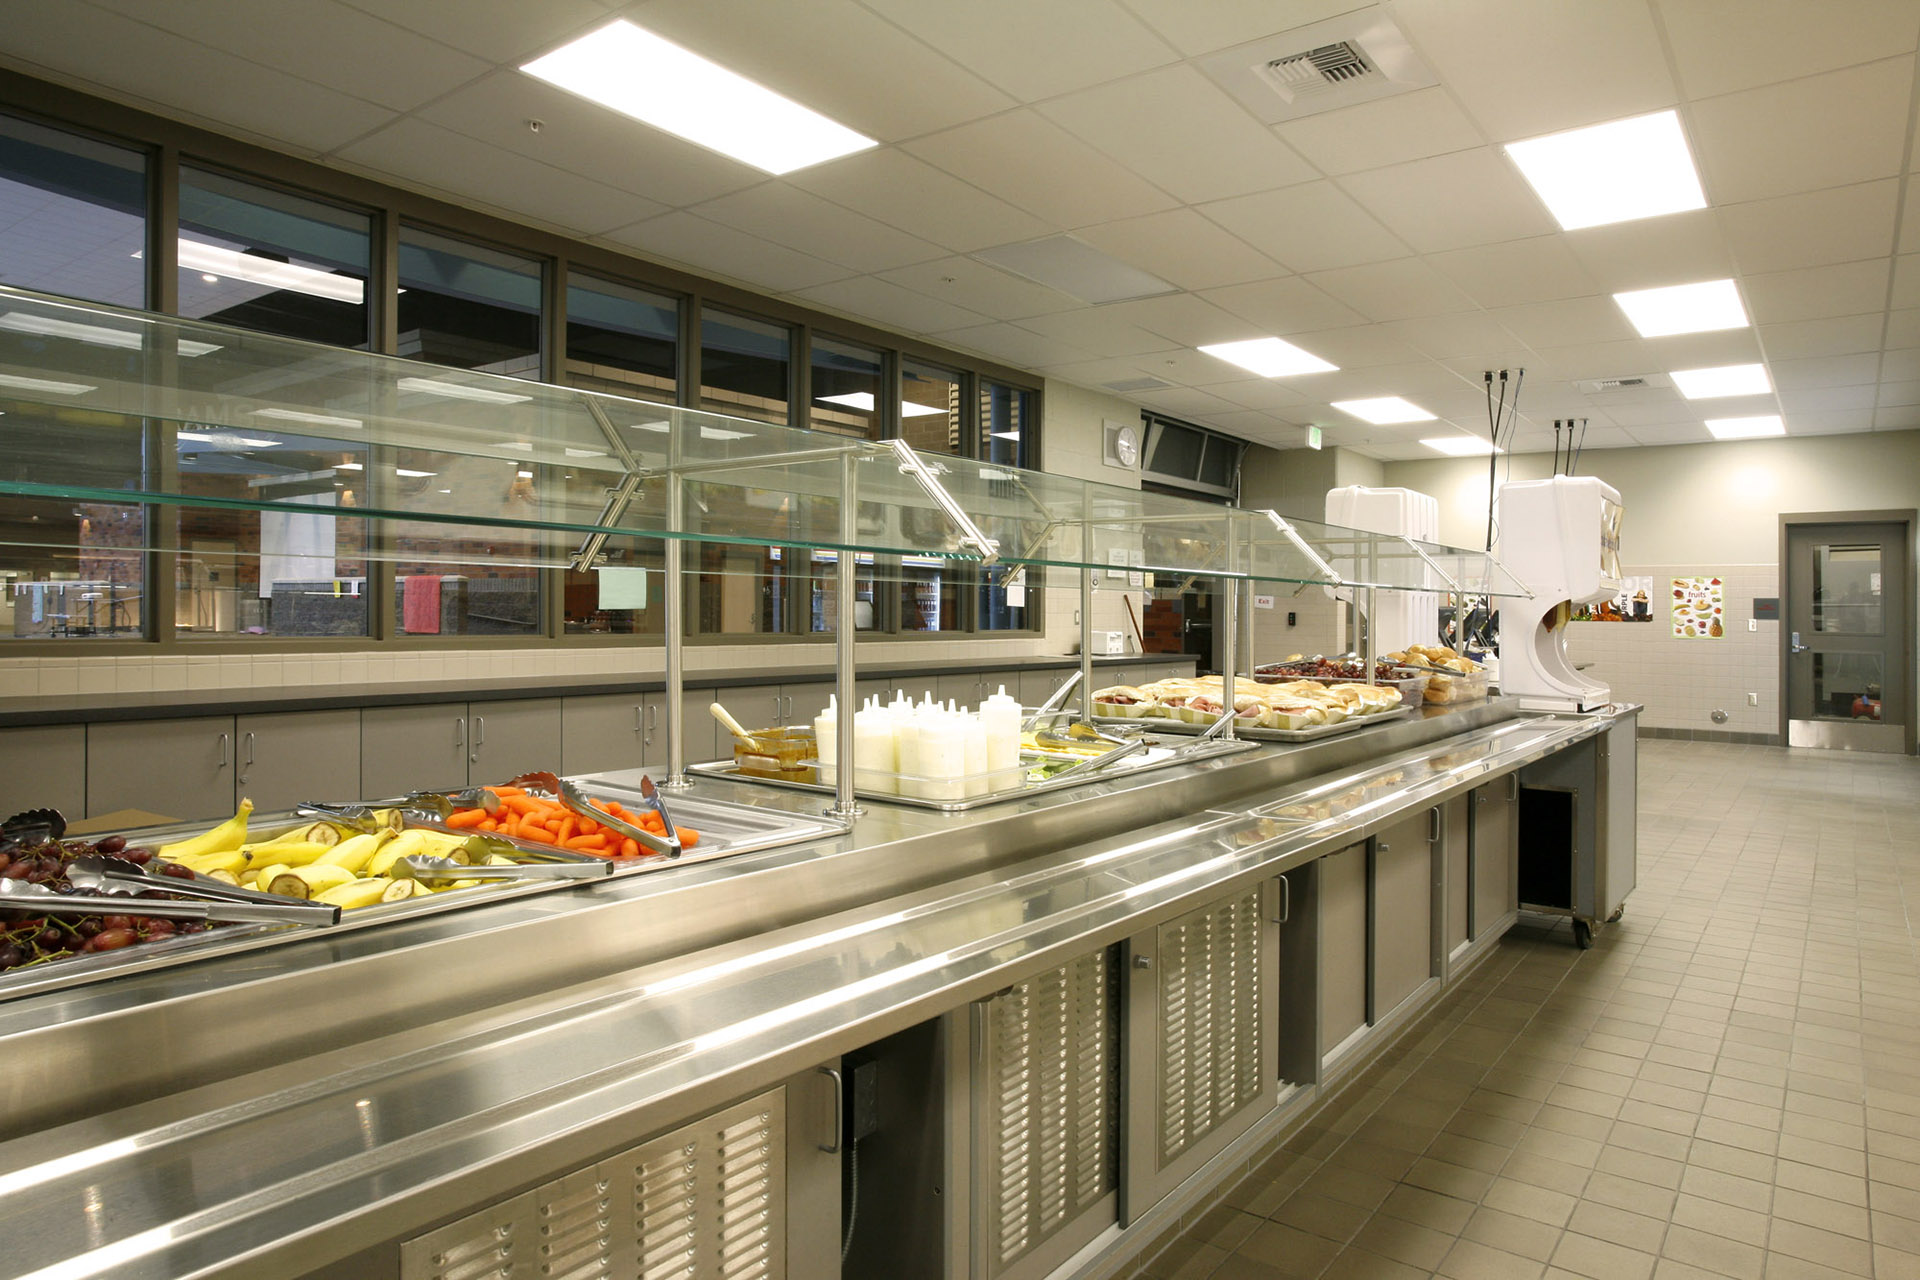 West Valley HS Ram Cafe